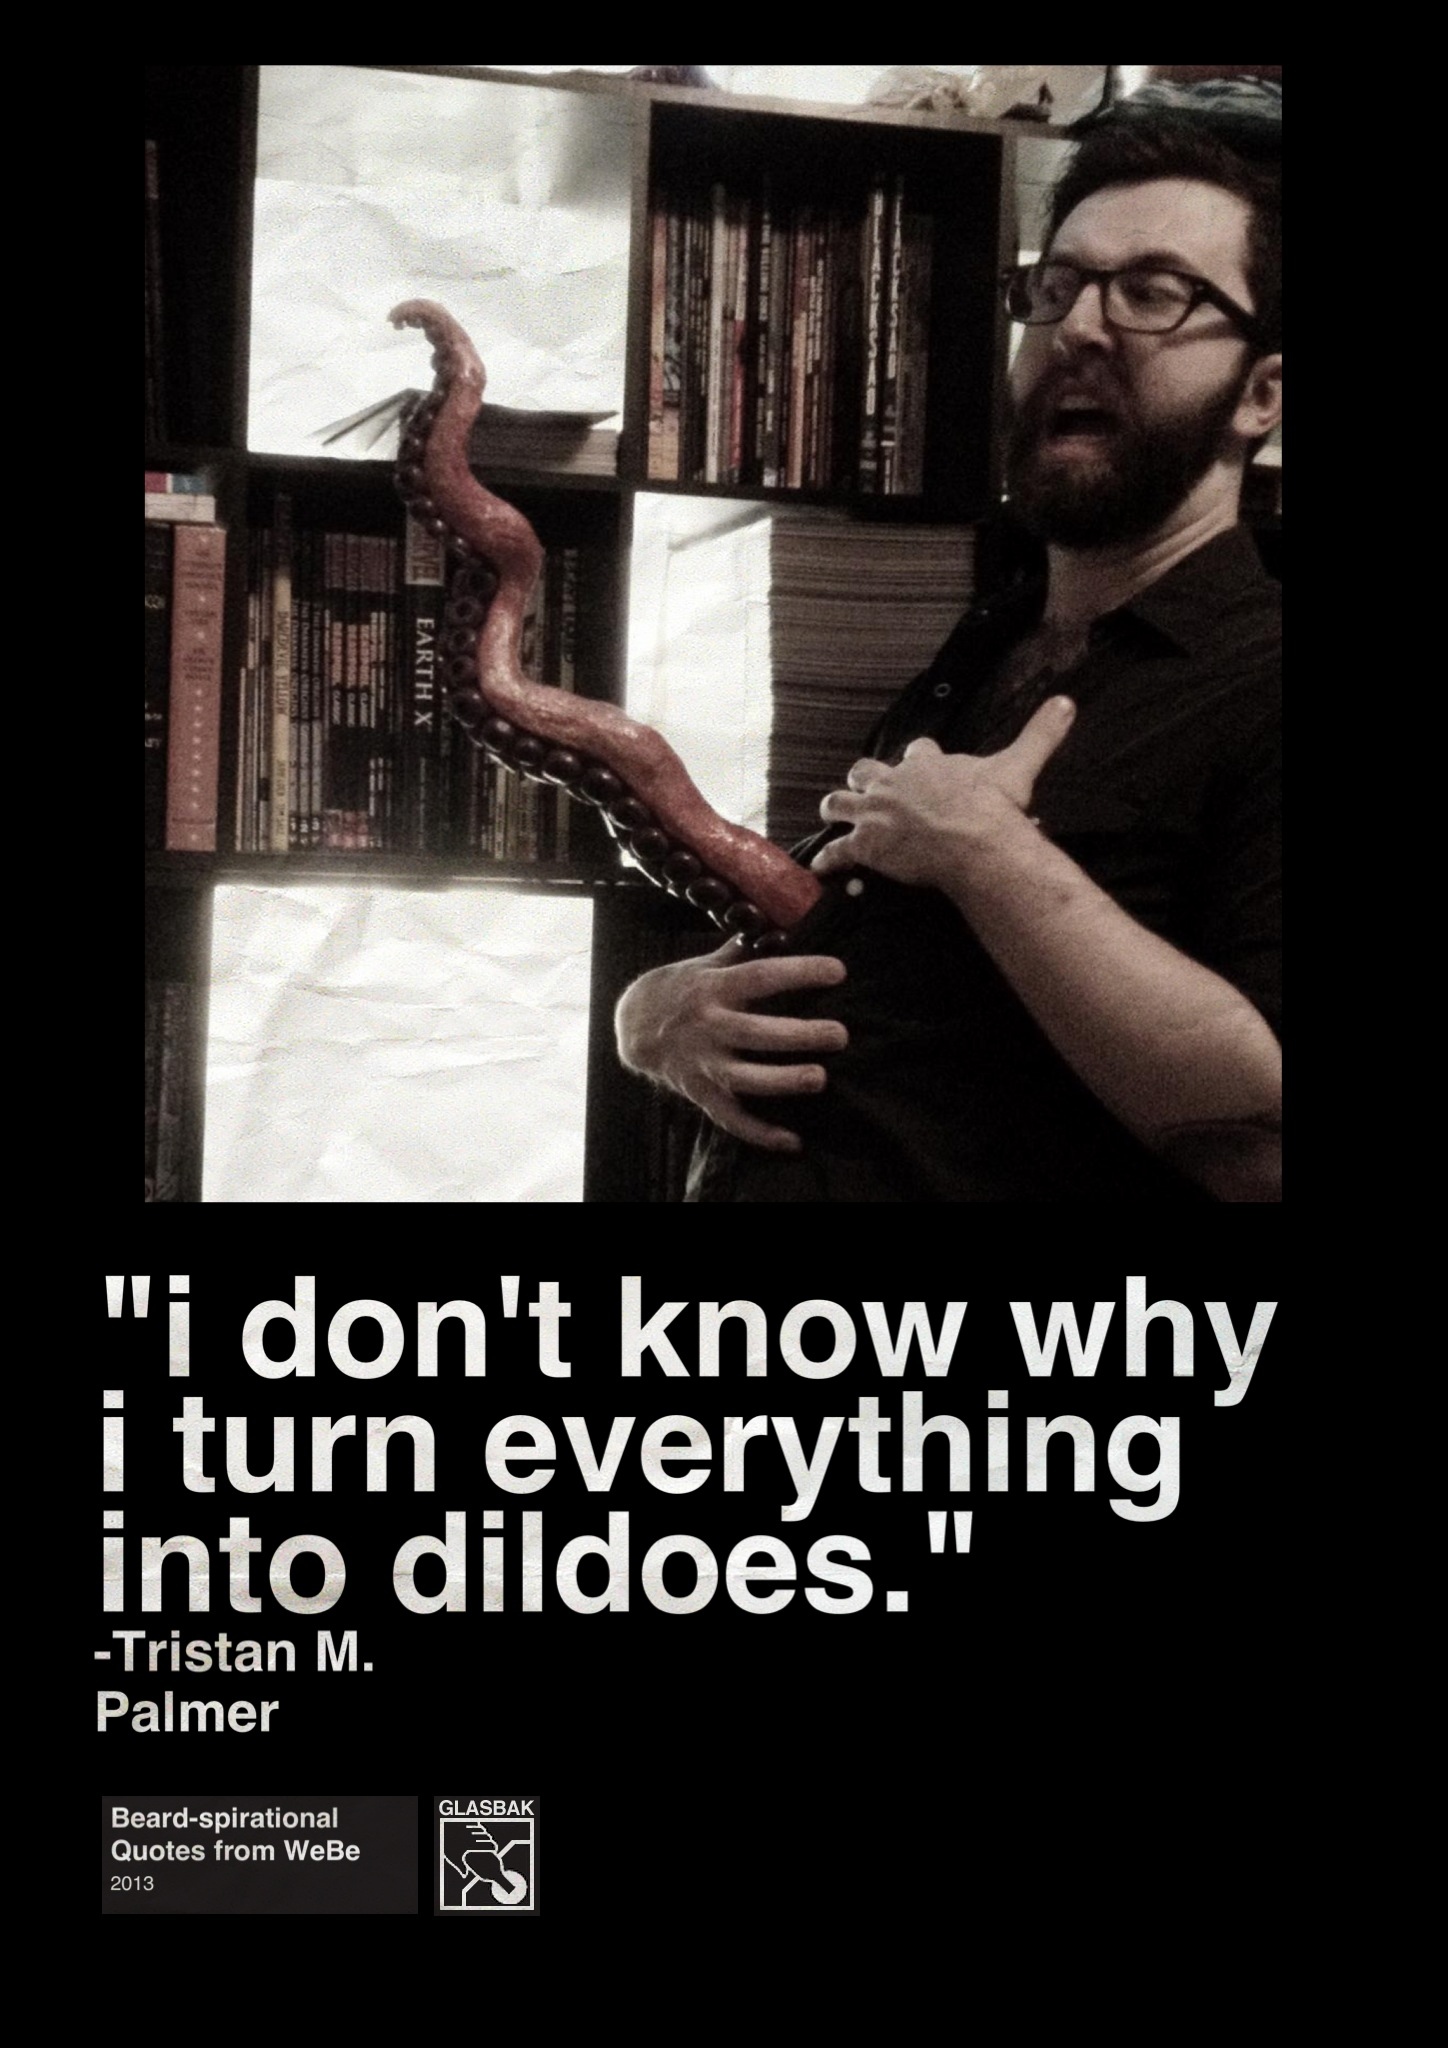 2013-02-06_i don't know why i turn everything into dildoes.jpg